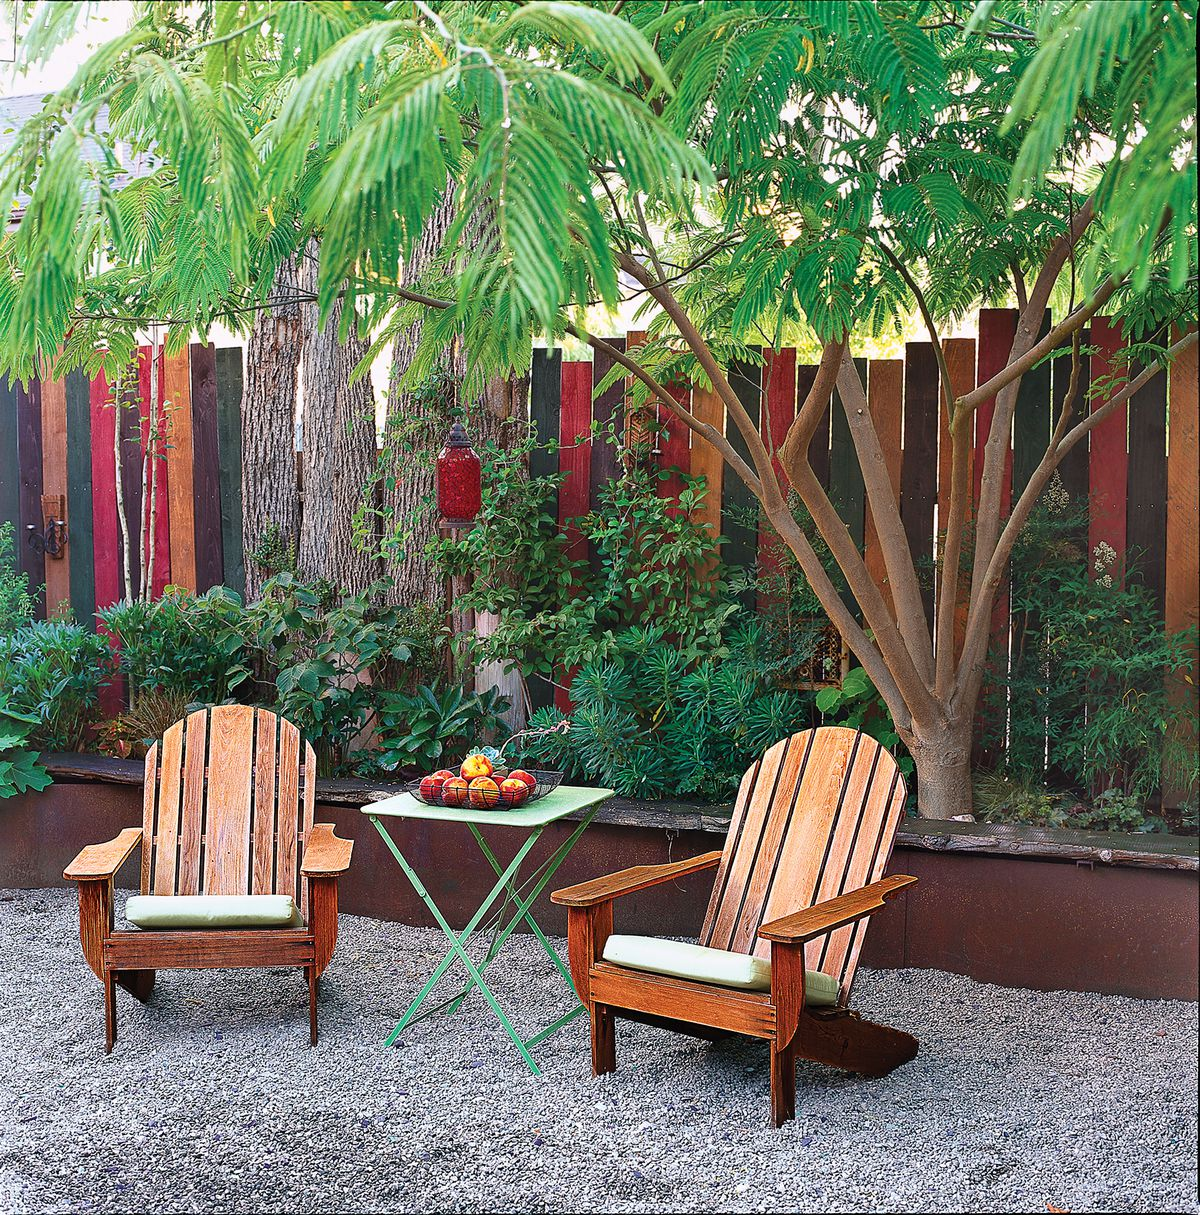 10 Backyard Privacy Ideas To Block Your Neighbors View This Old House